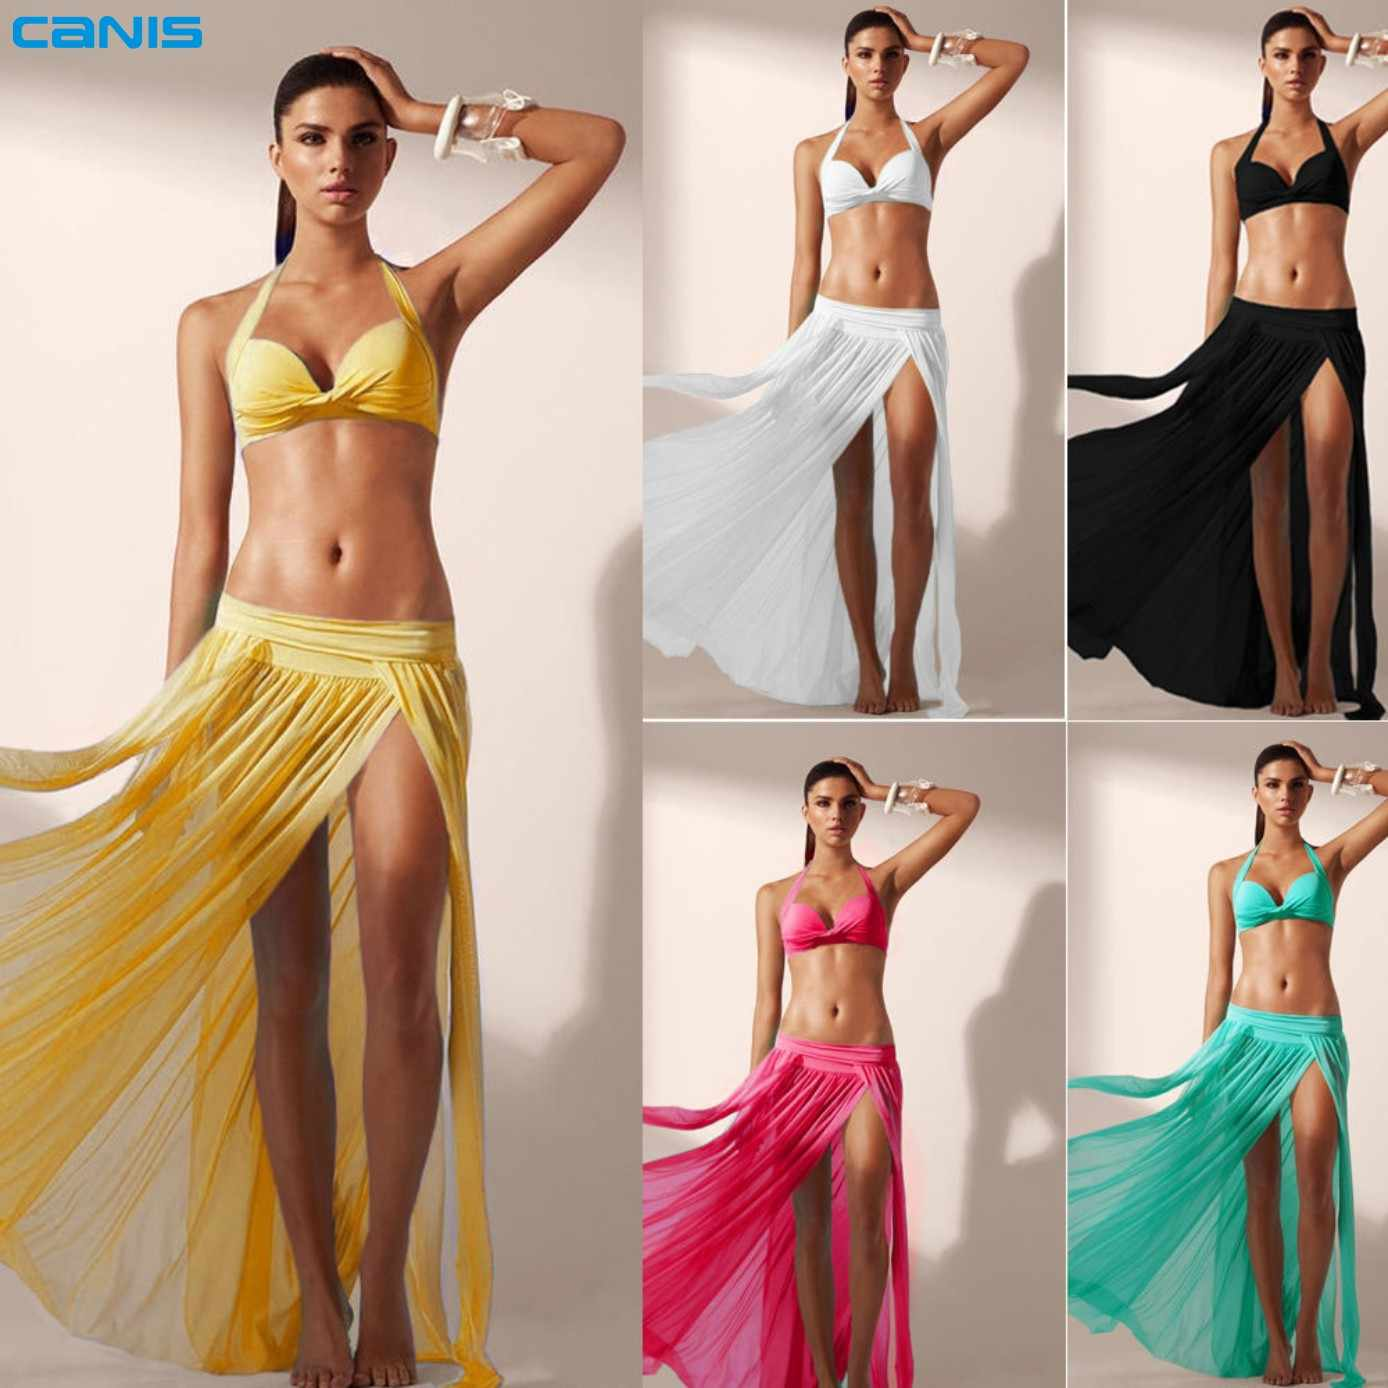 94e3023ea7 Summer Style 2015 Sexy Women Swimwear Bikini Beach Cover Up Skirt Beach  Swimsuit Cover Up Beachwear